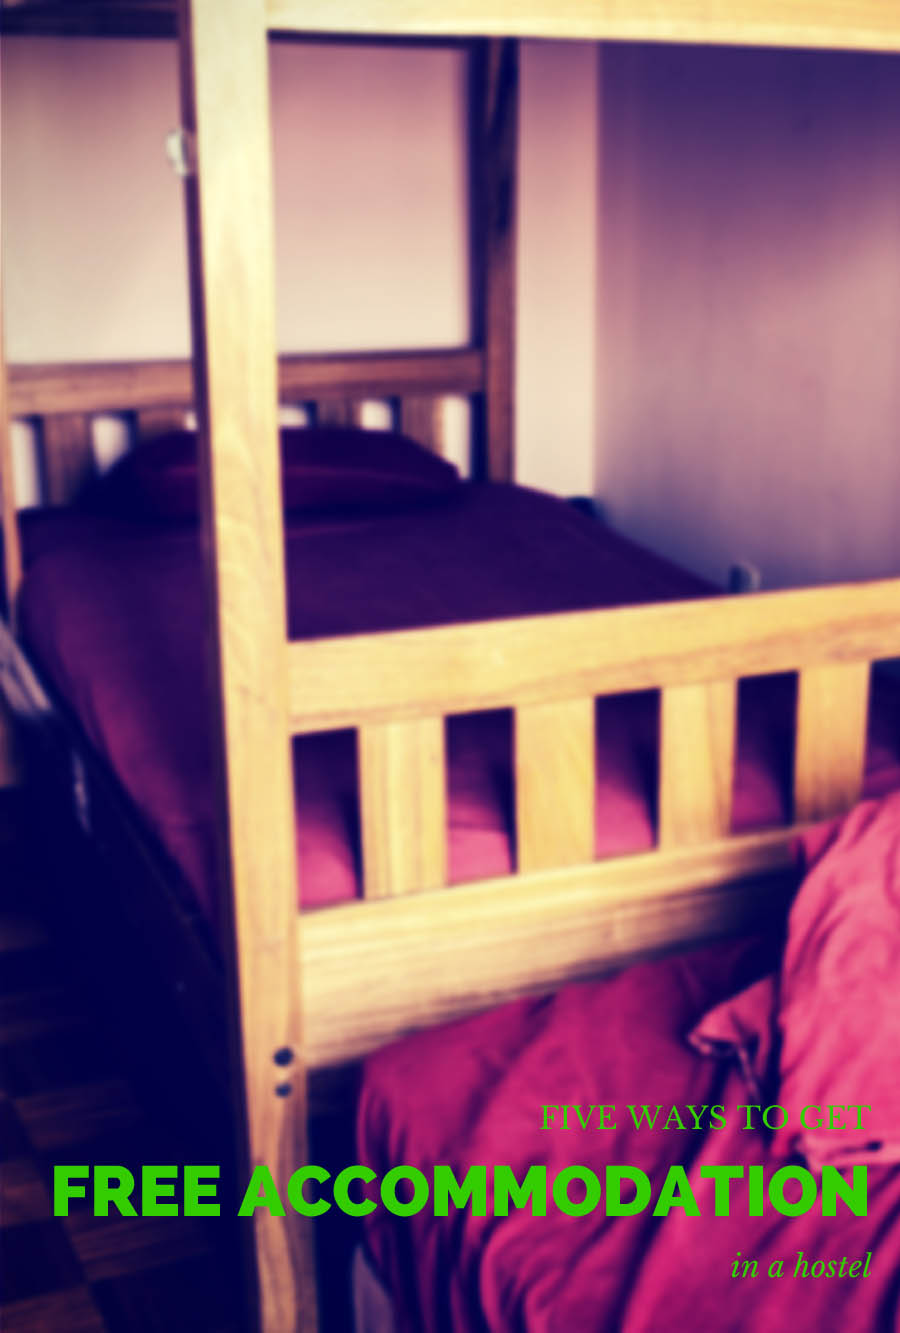 Five Ways to Get Free Accommodation in a Hostel